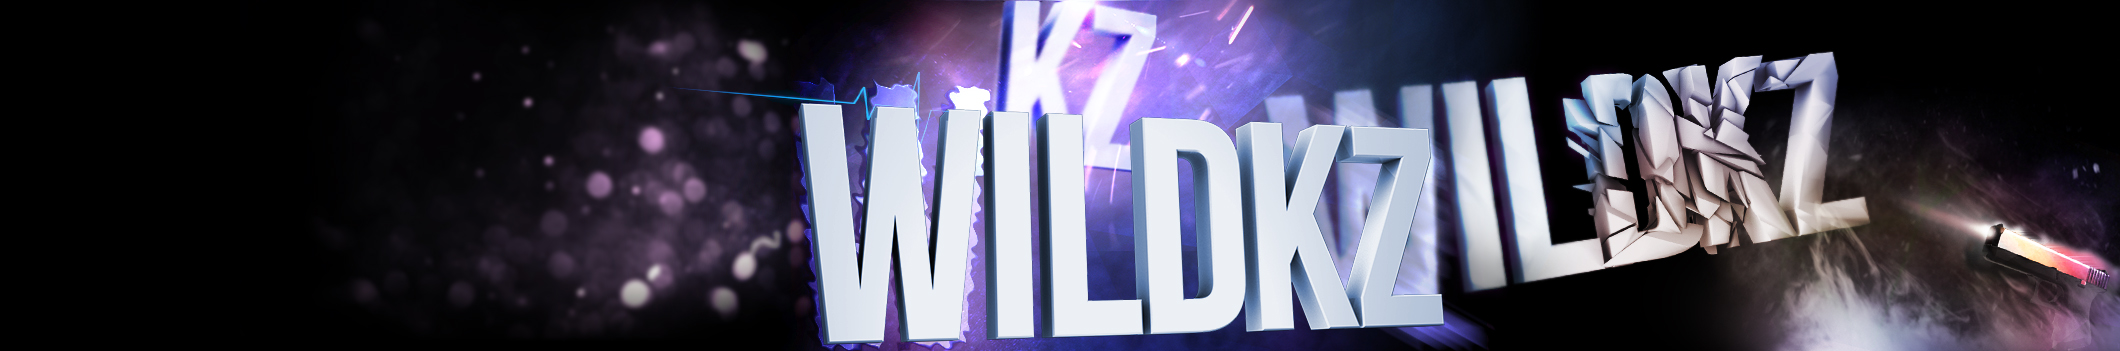 Wildkz's Youtube Banner by sdc321